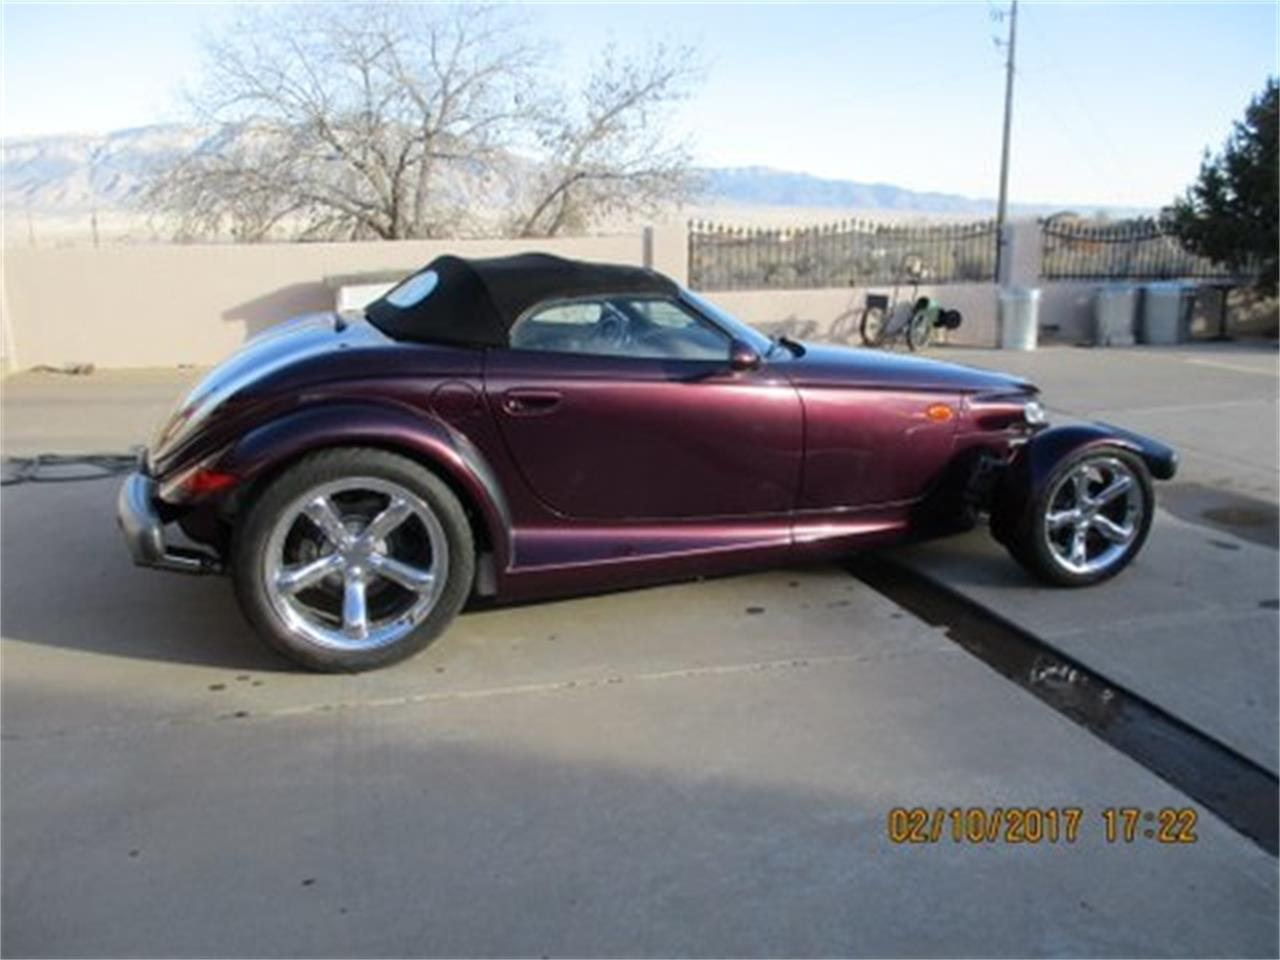 Large Picture of 1999 Plymouth  Prowler located in Rio Rancho New Mexico - $34,000.00 - KHNV